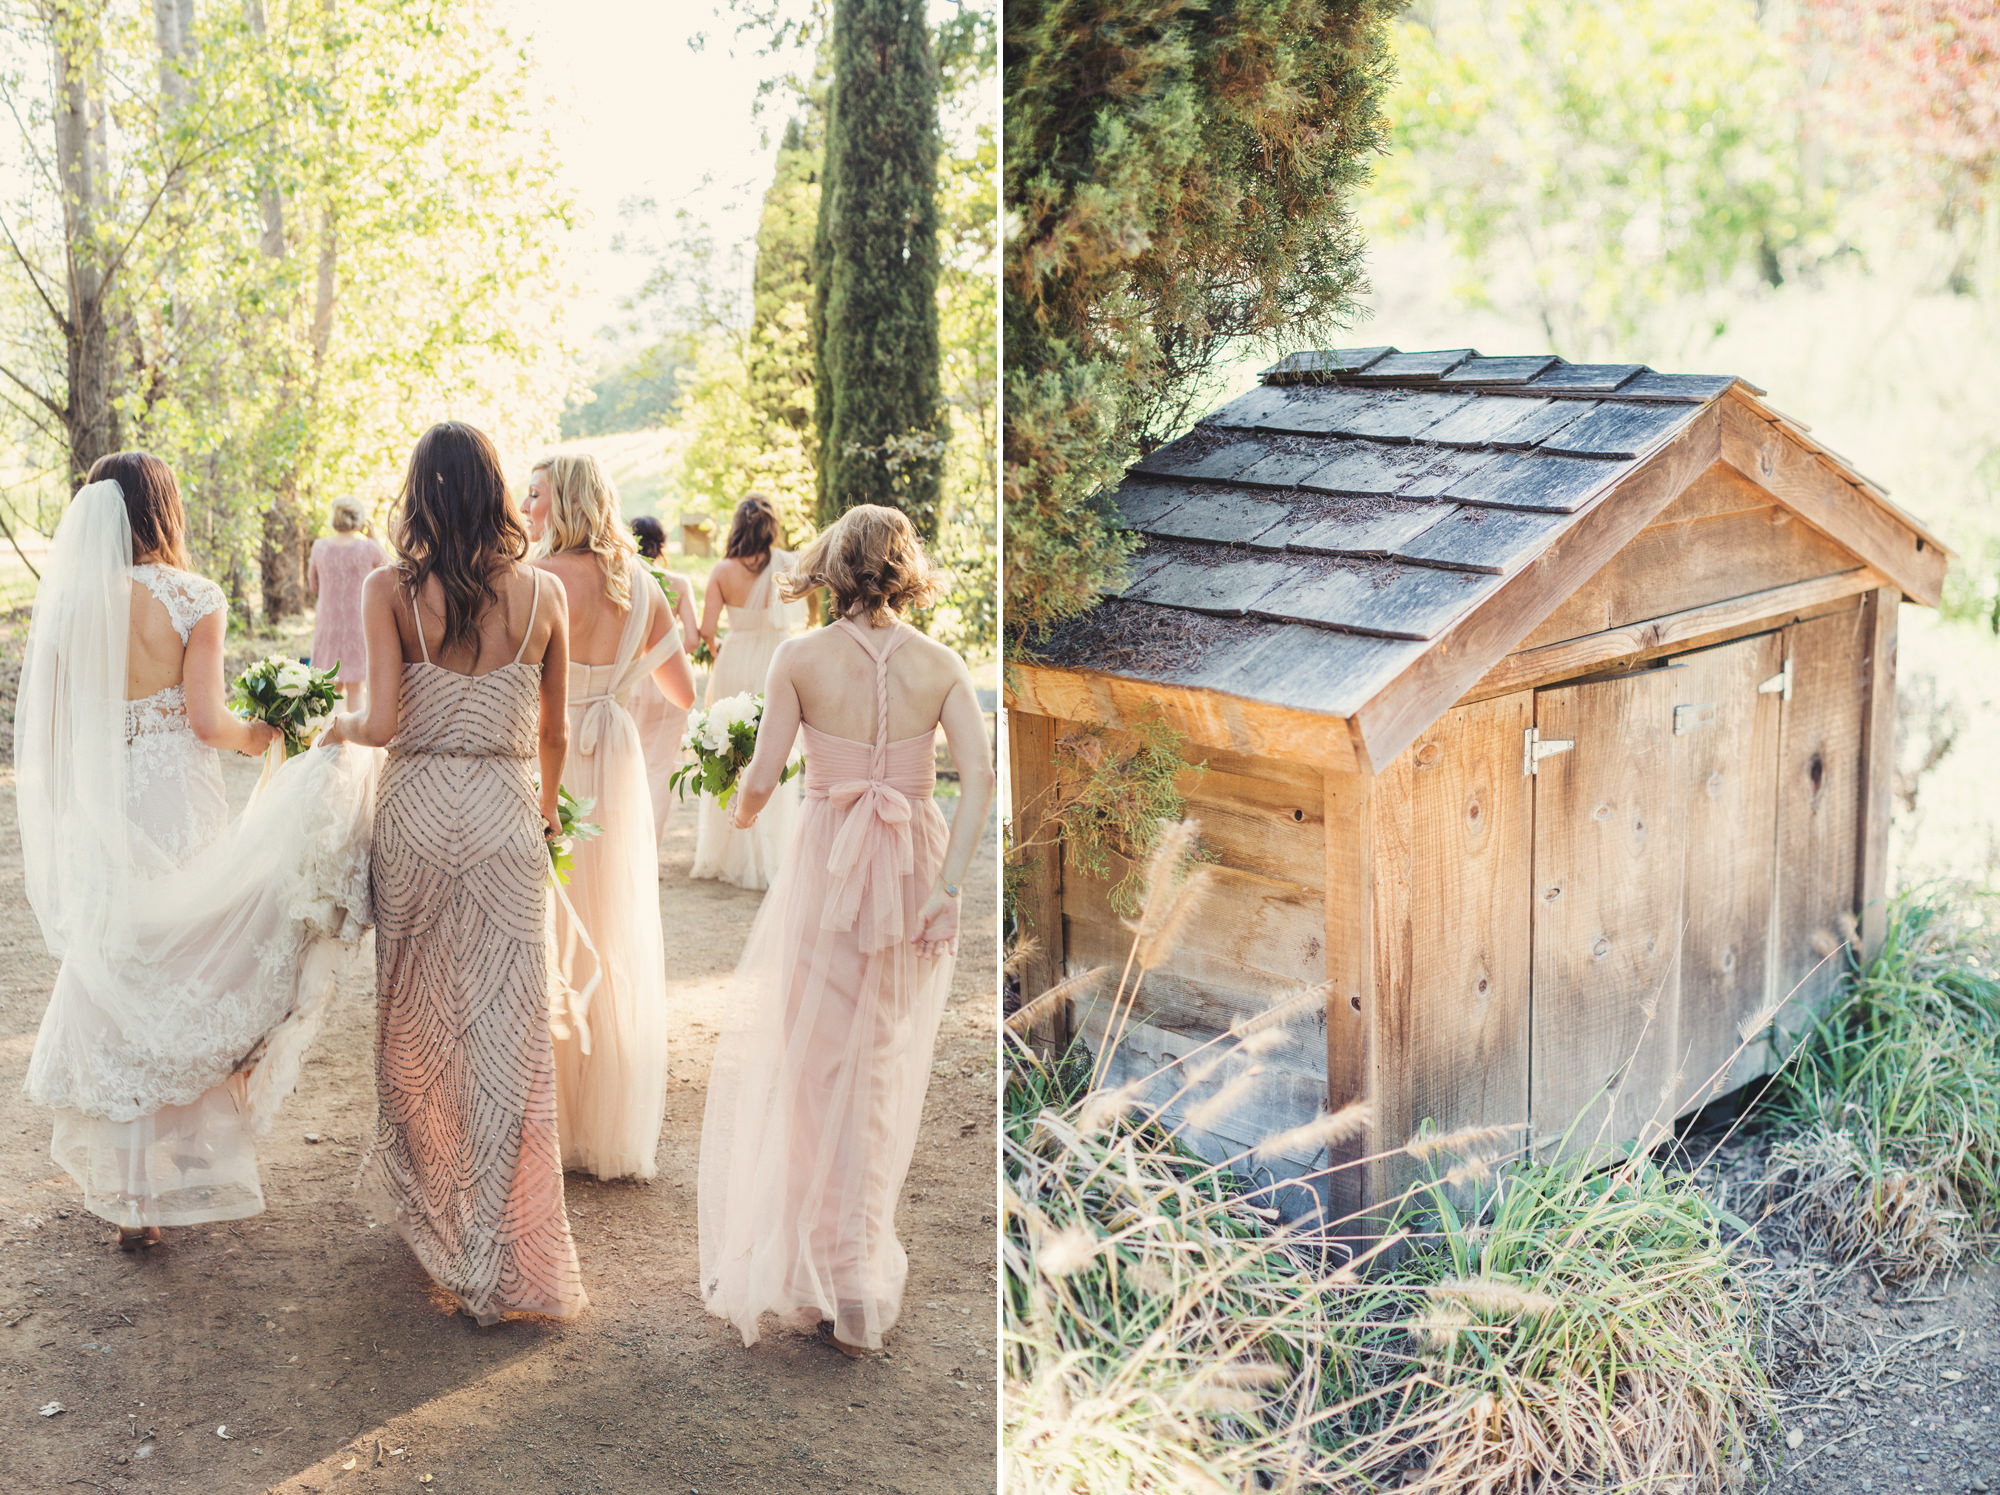 Wedding in Campovida @Anne-Claire Brun 87